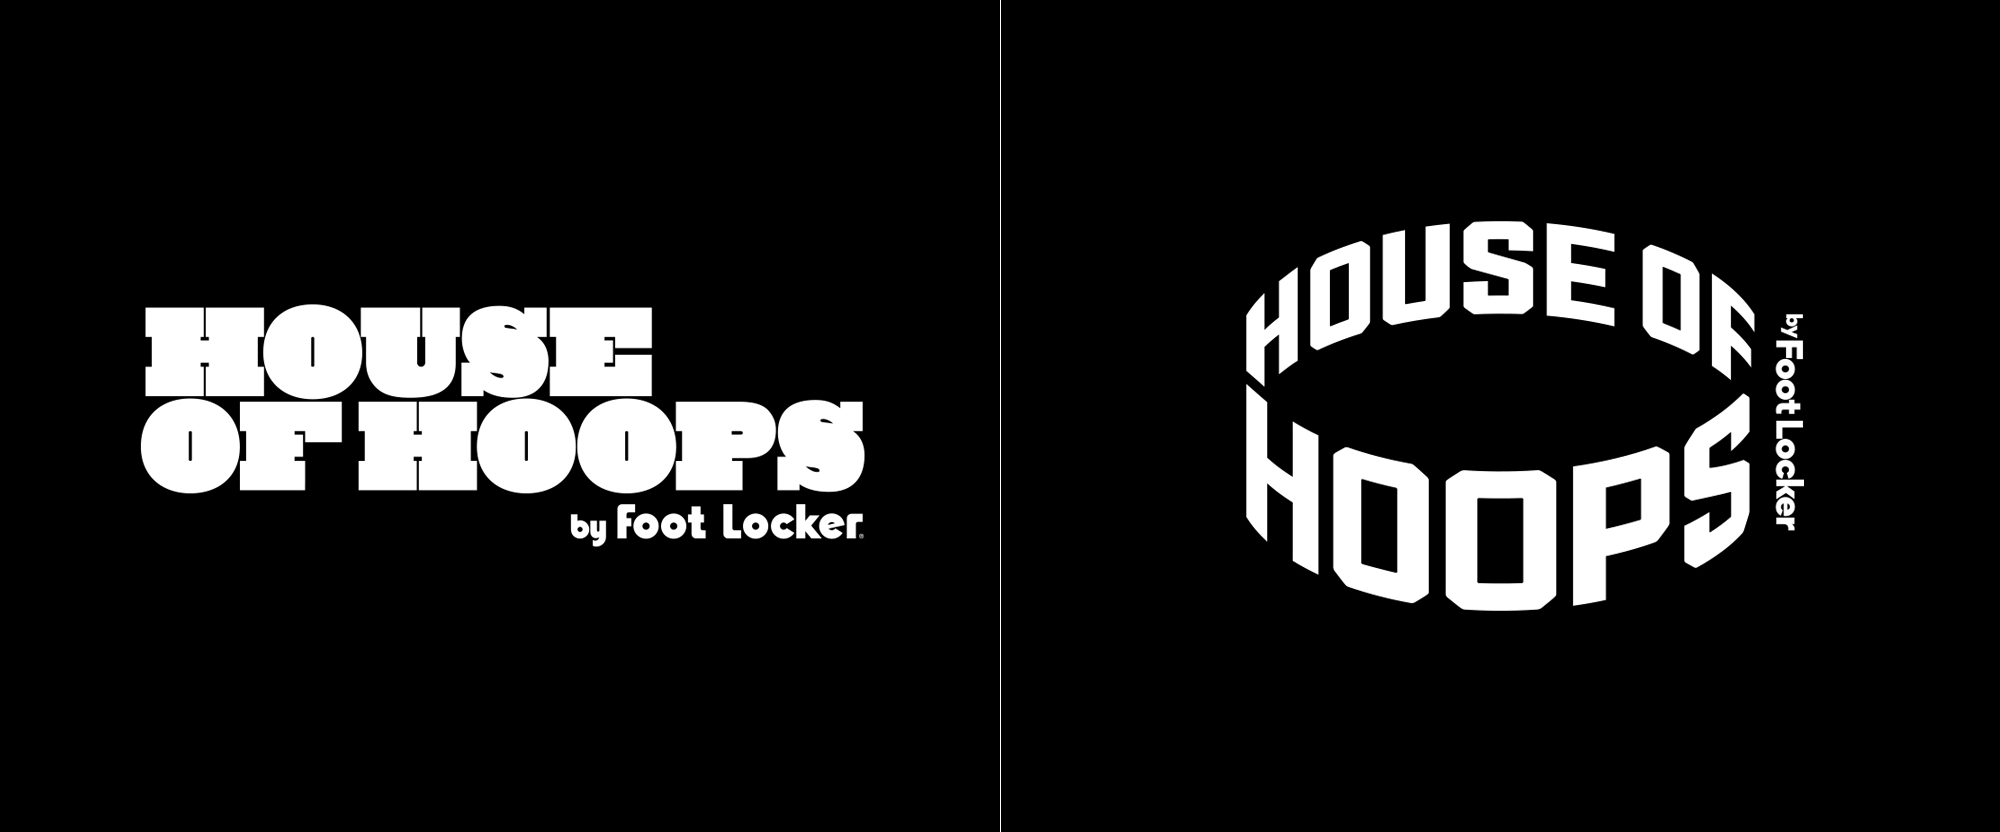 New Logo and Identity for House of Hoops by SouthSouthWest